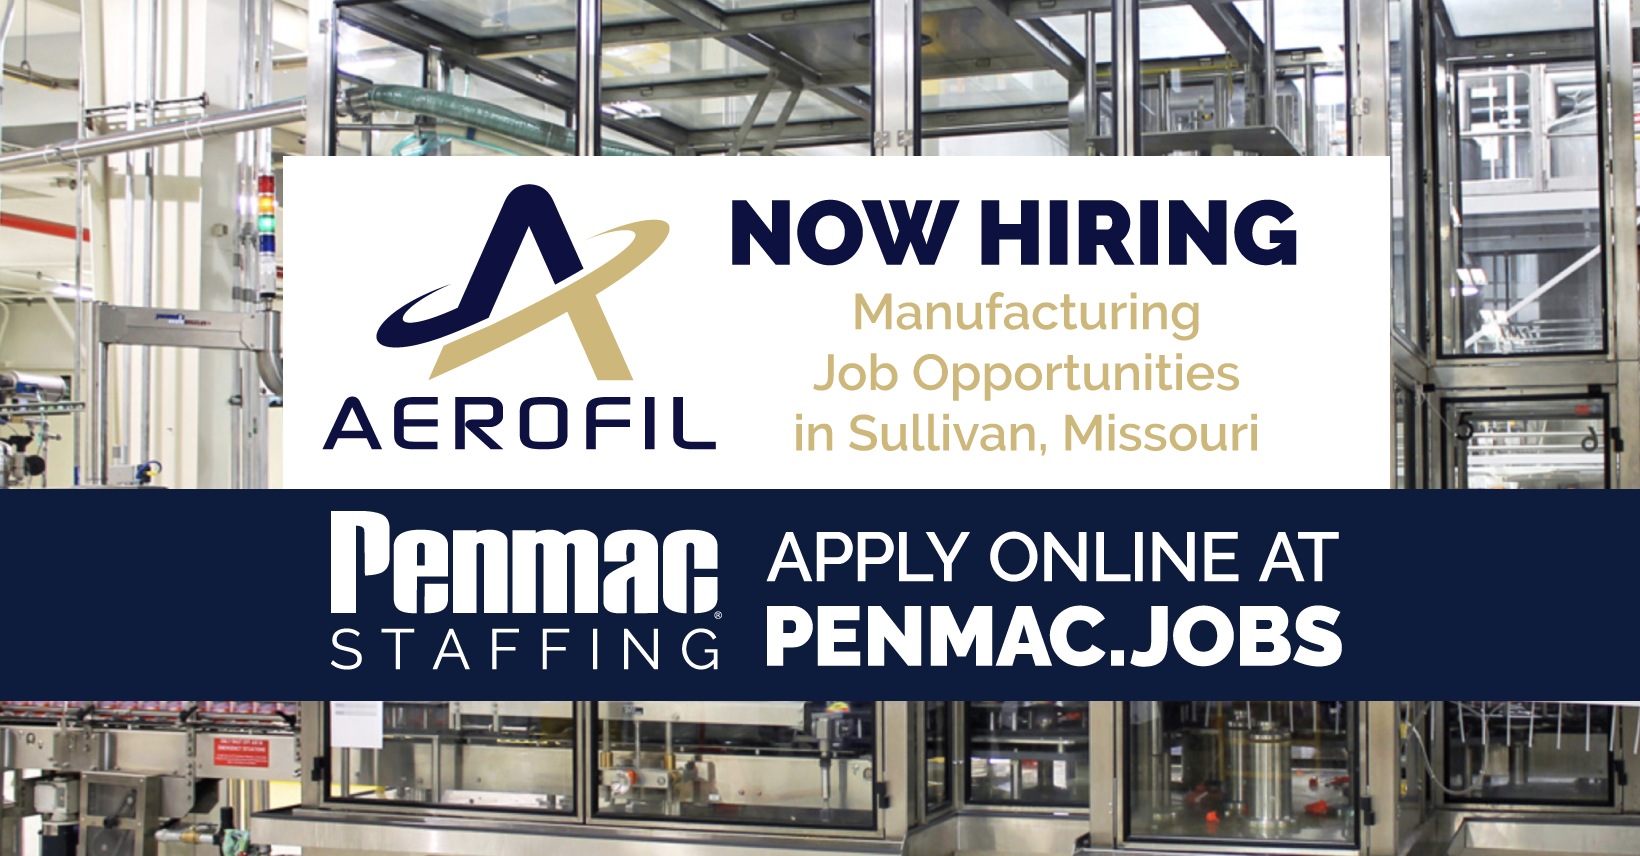 Aerofil and Penmac Staffing Hiring to Fill More Than 50 Jobs in Sullivan, Missouri